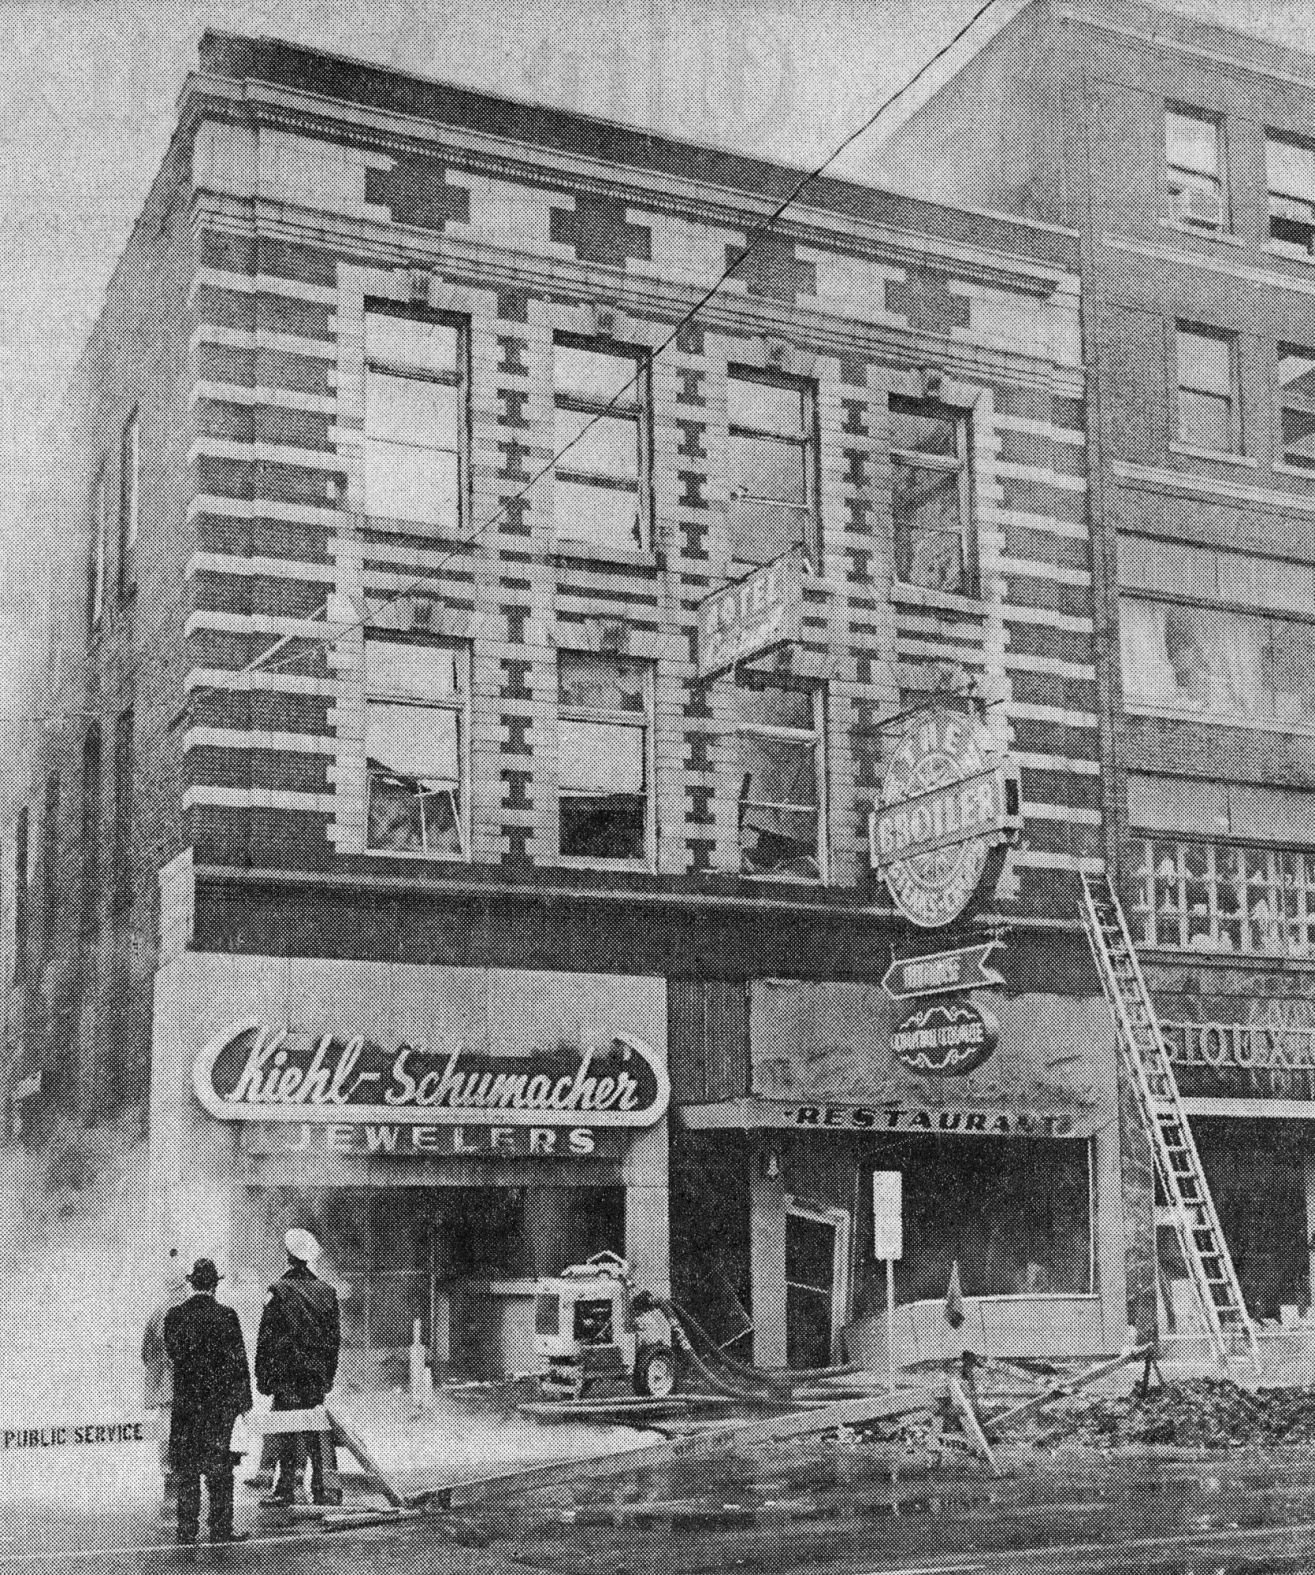 Central Hotel Fire, 1968